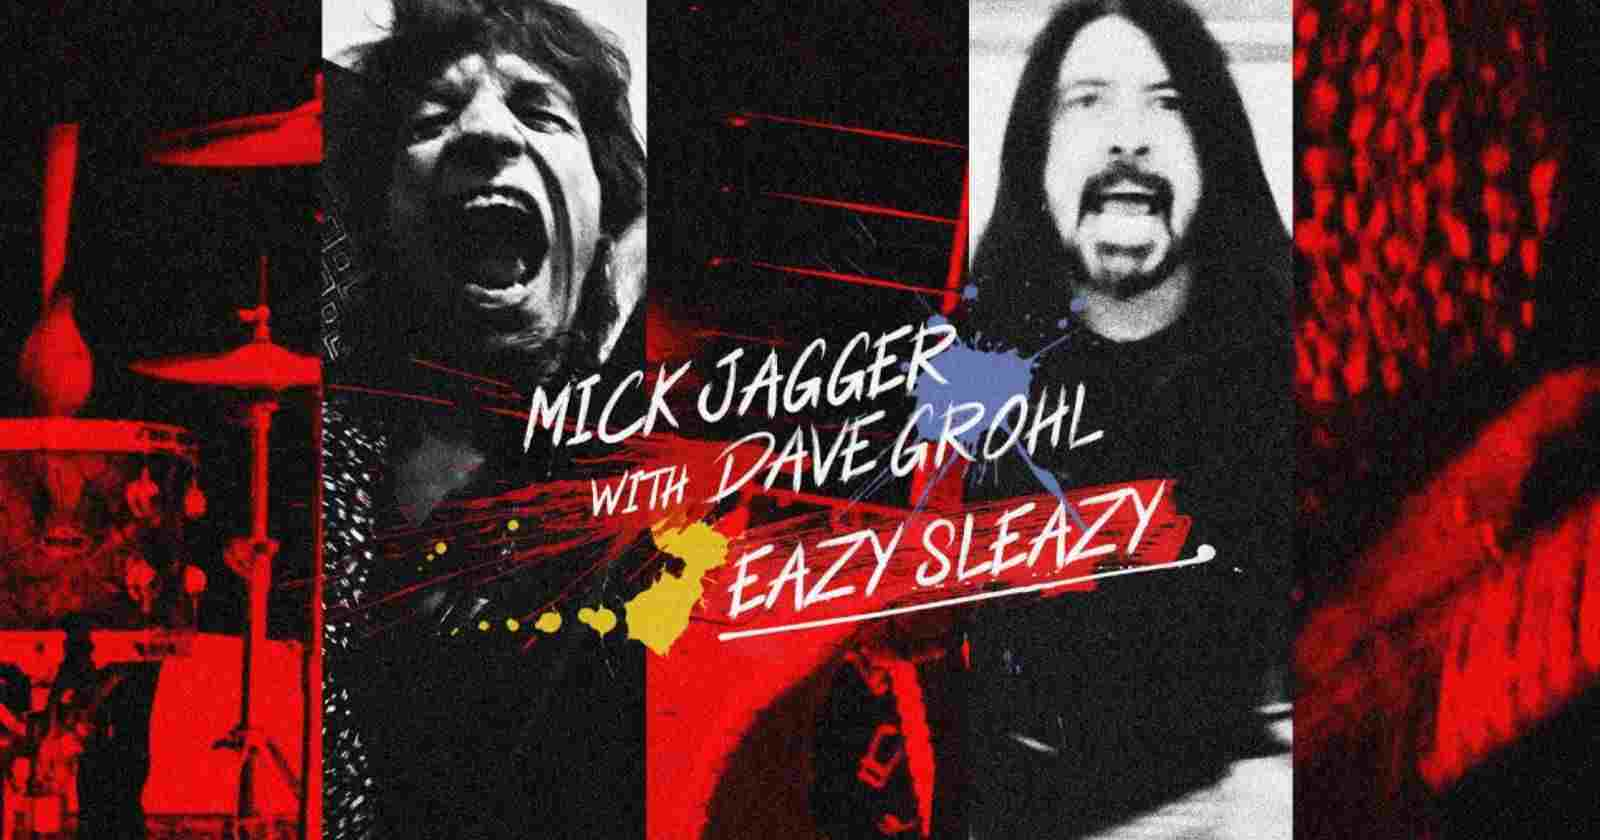 Mick Jagger Dave Grohl